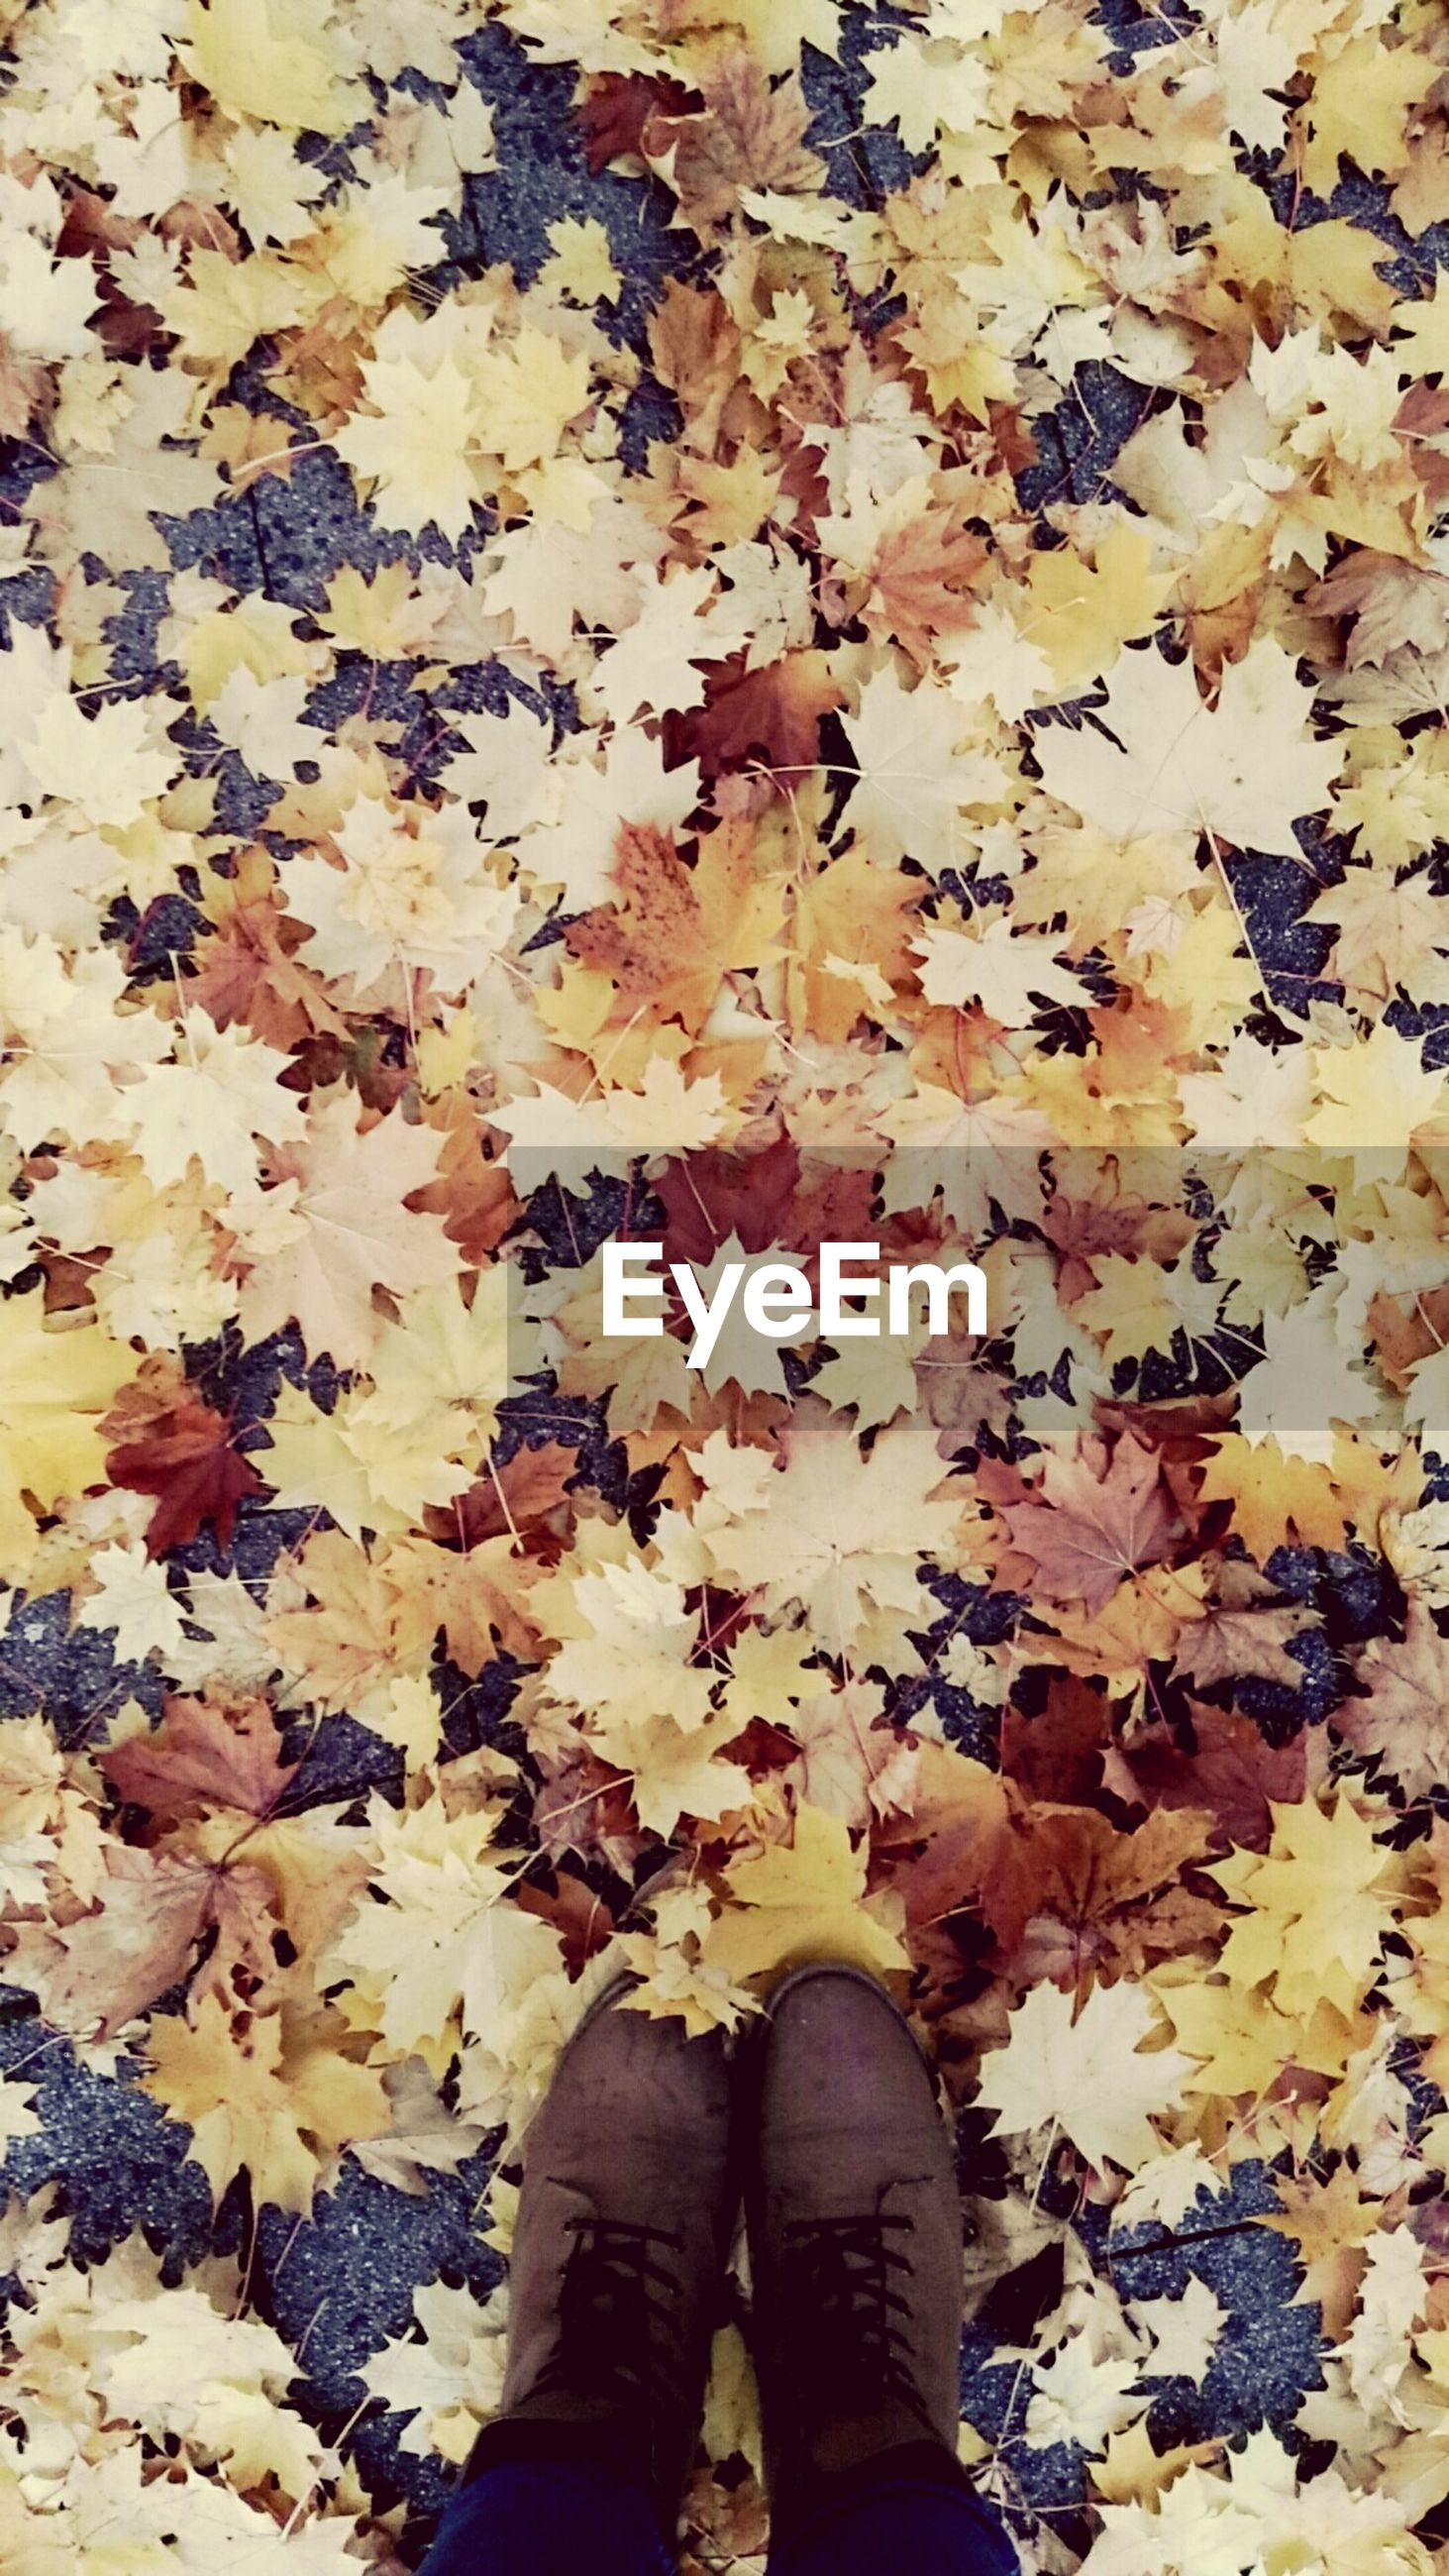 leaf, autumn, change, low section, leaves, nature, human leg, one person, abundance, real people, day, beauty in nature, yellow, standing, outdoors, maple leaf, fragility, flower, maple, close-up, people